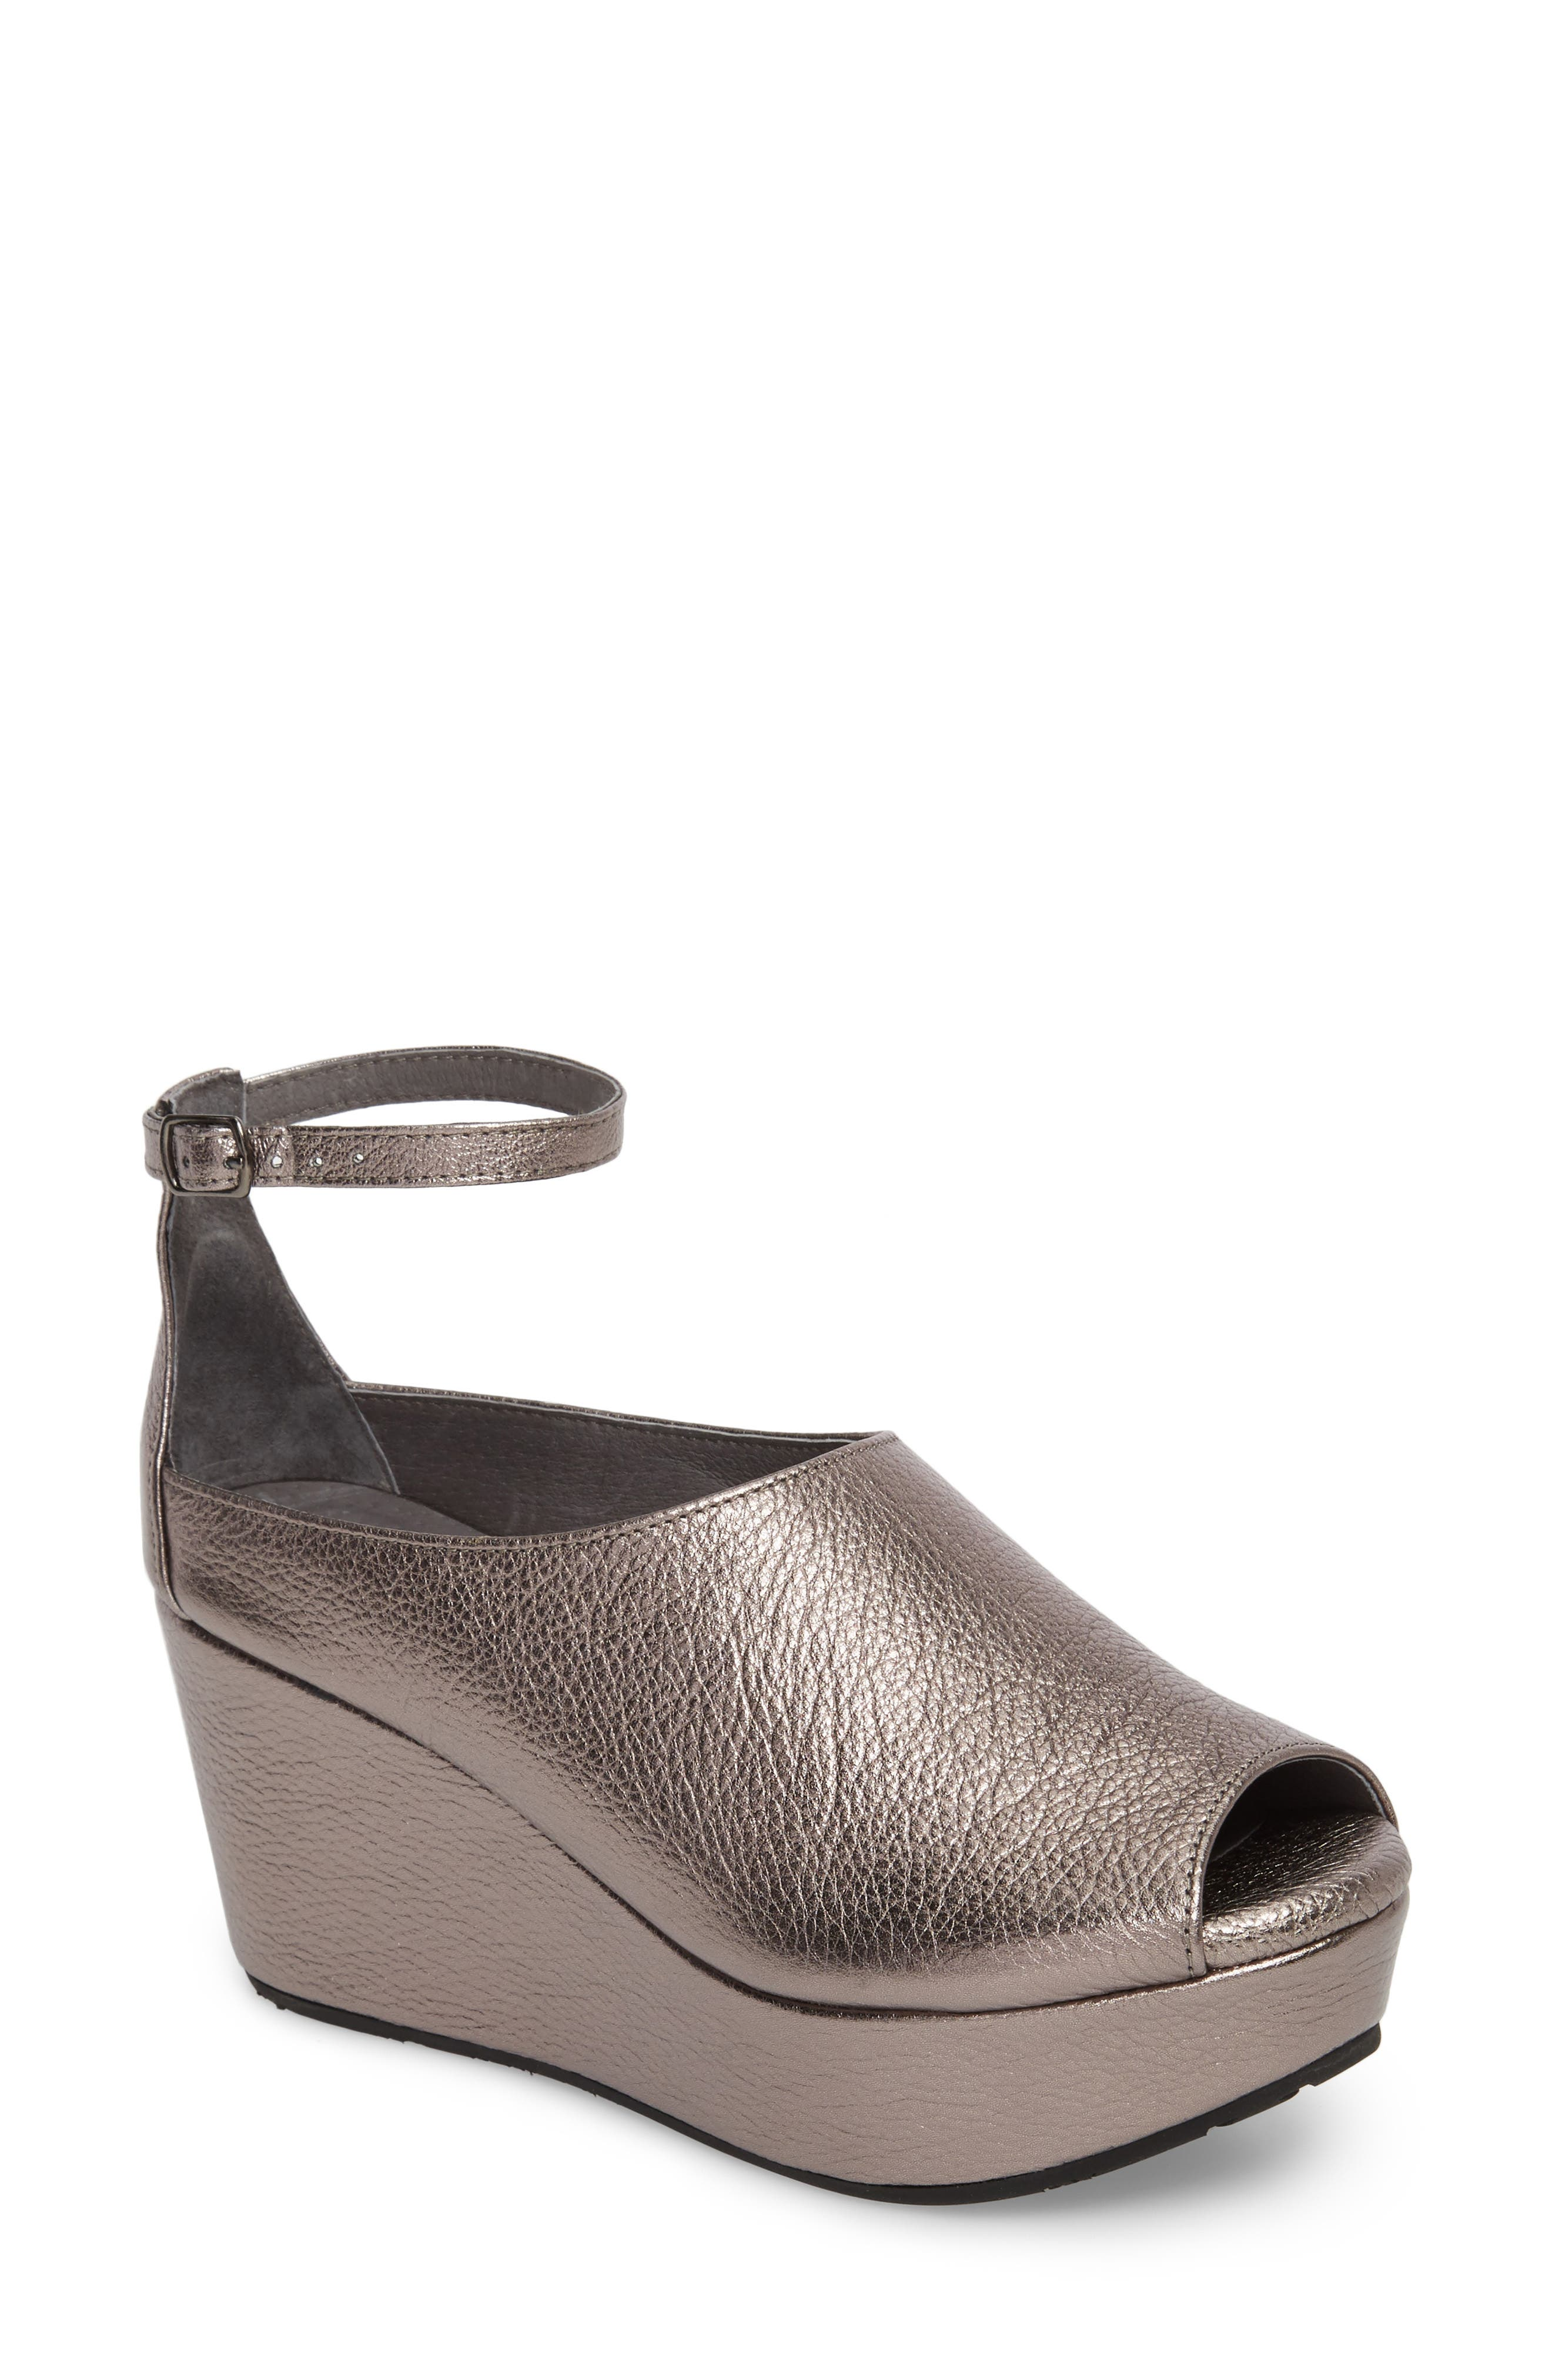 Walter Ankle Strap Wedge Sandal,                             Main thumbnail 1, color,                             GUNMETAL LEATHER